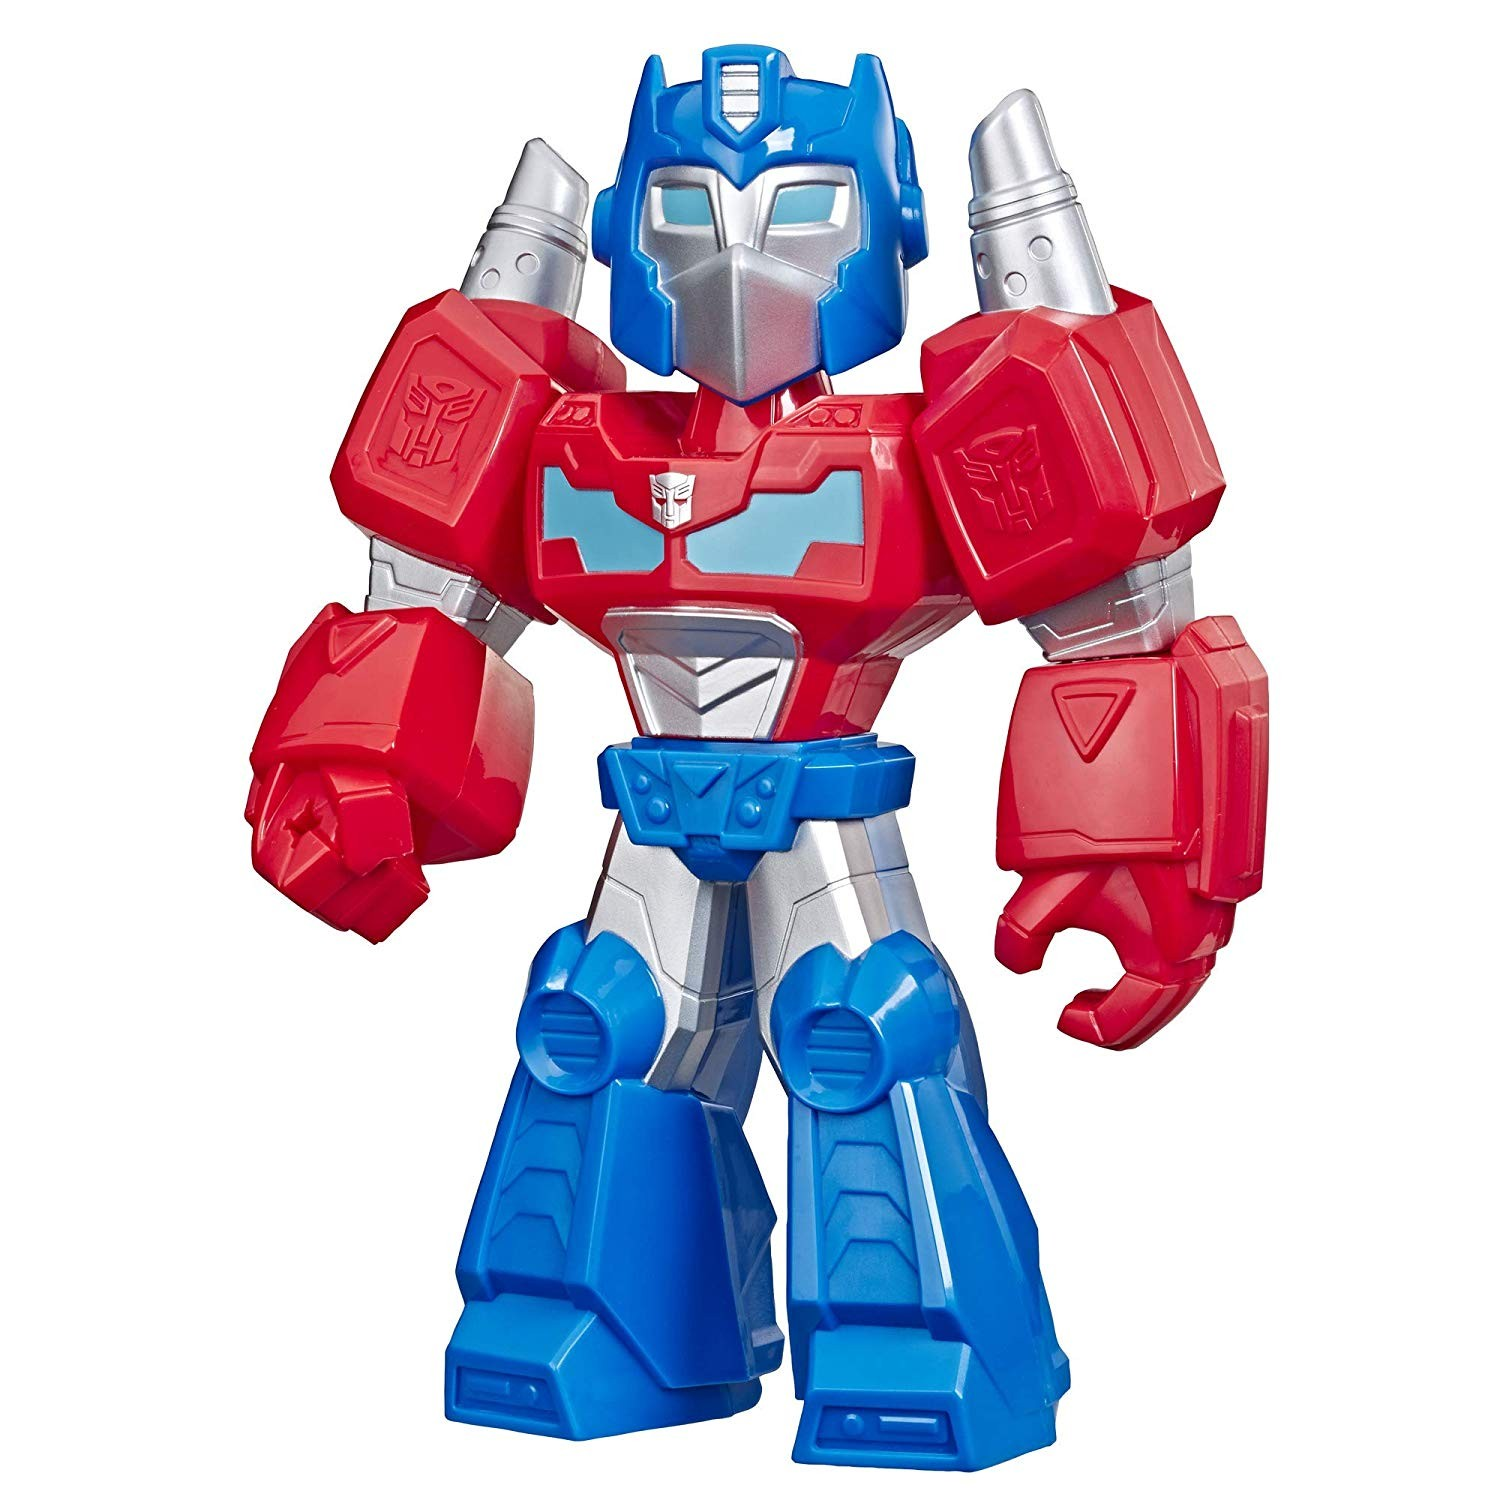 Transformers News: Images for Mega Mighties Optimus and Heatwave + Sightings Online and at Retail